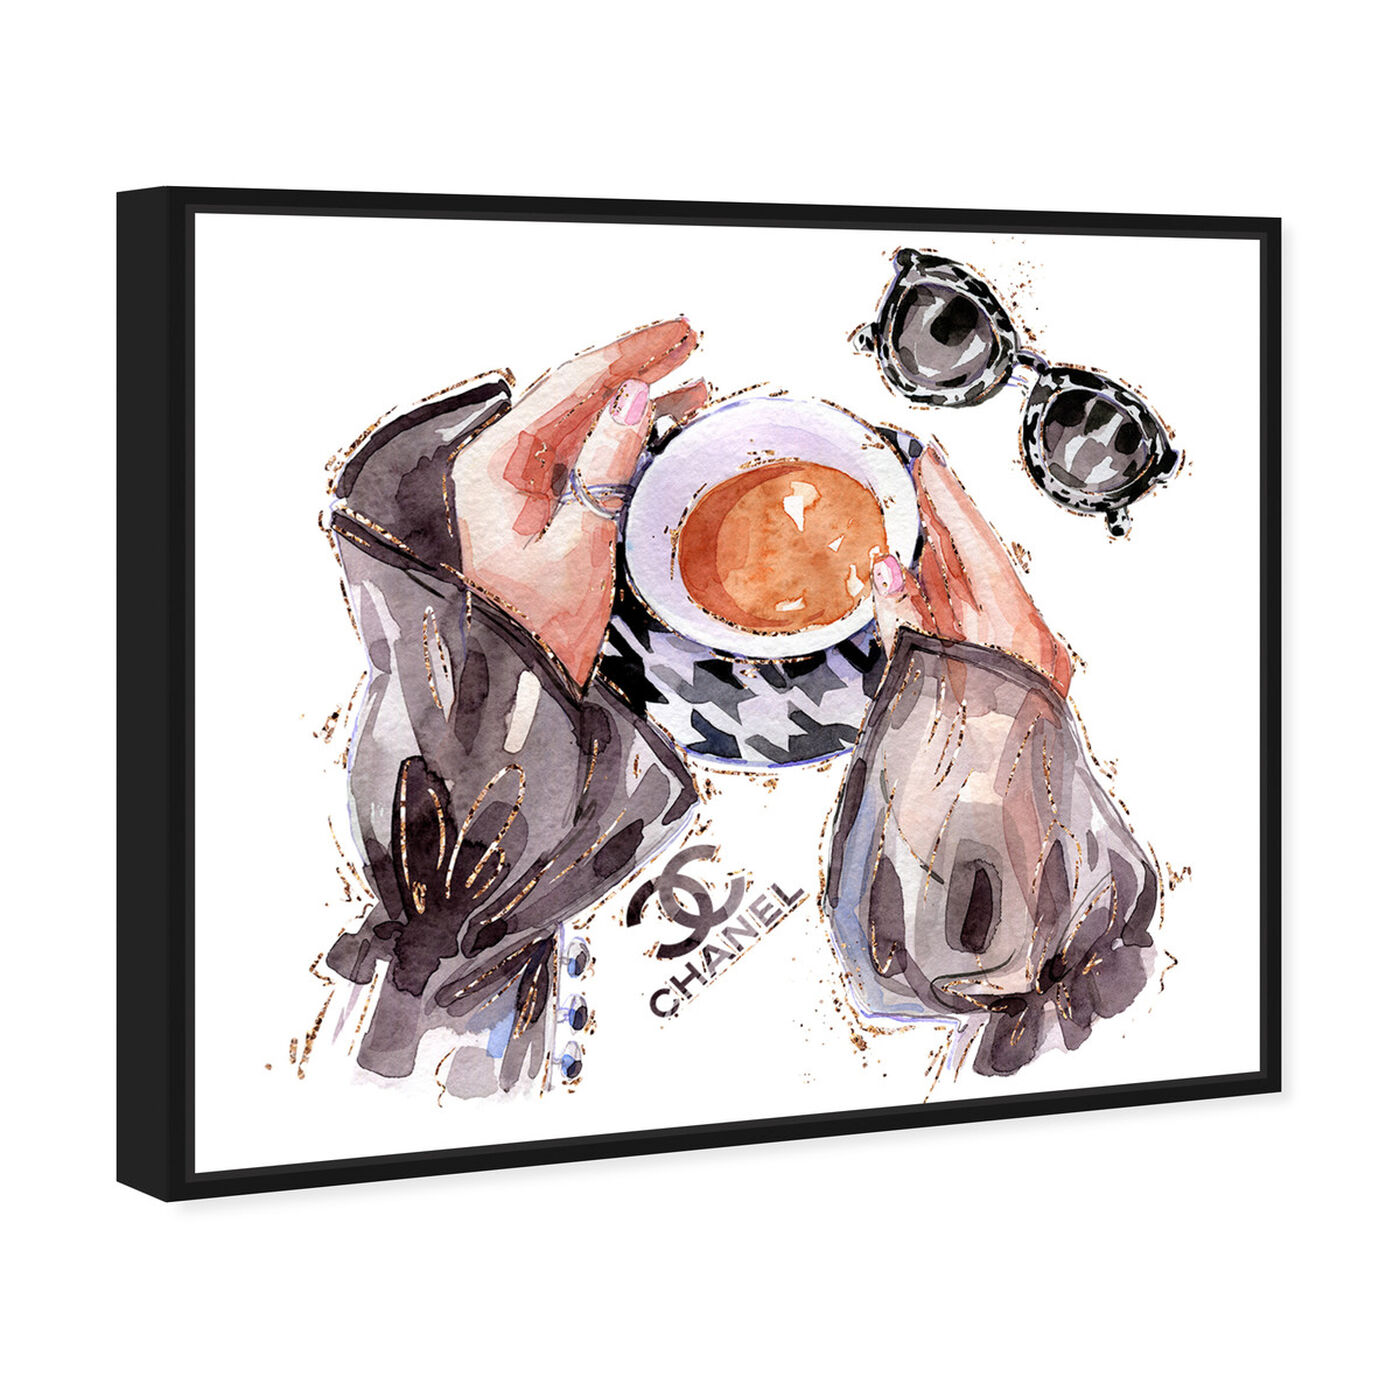 Angled view of Silky Fashion and Coffee featuring fashion and glam and lifestyle art.